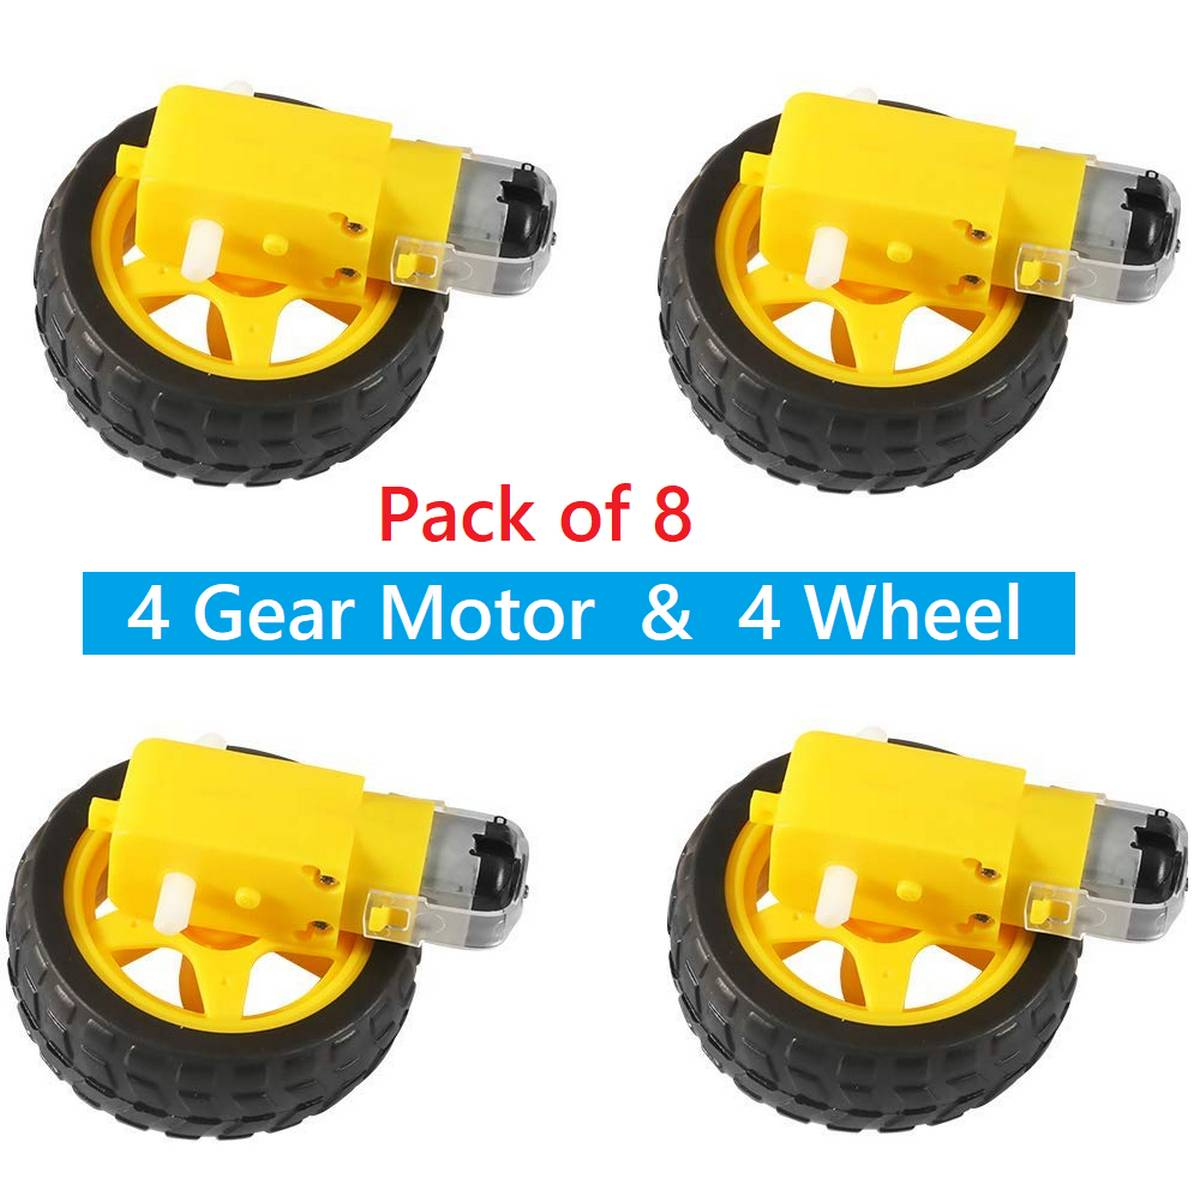 Pack of 8 : DC Gear Motor and Plastic Wheel 3∼6V Dual Shaft Smart Car Robot Geared TT Magnetic Gearbox Engine for Arduino Diy Kit 4 Motor and 4 Plastic Wheel RC Car Gear Motor with Car Wheel